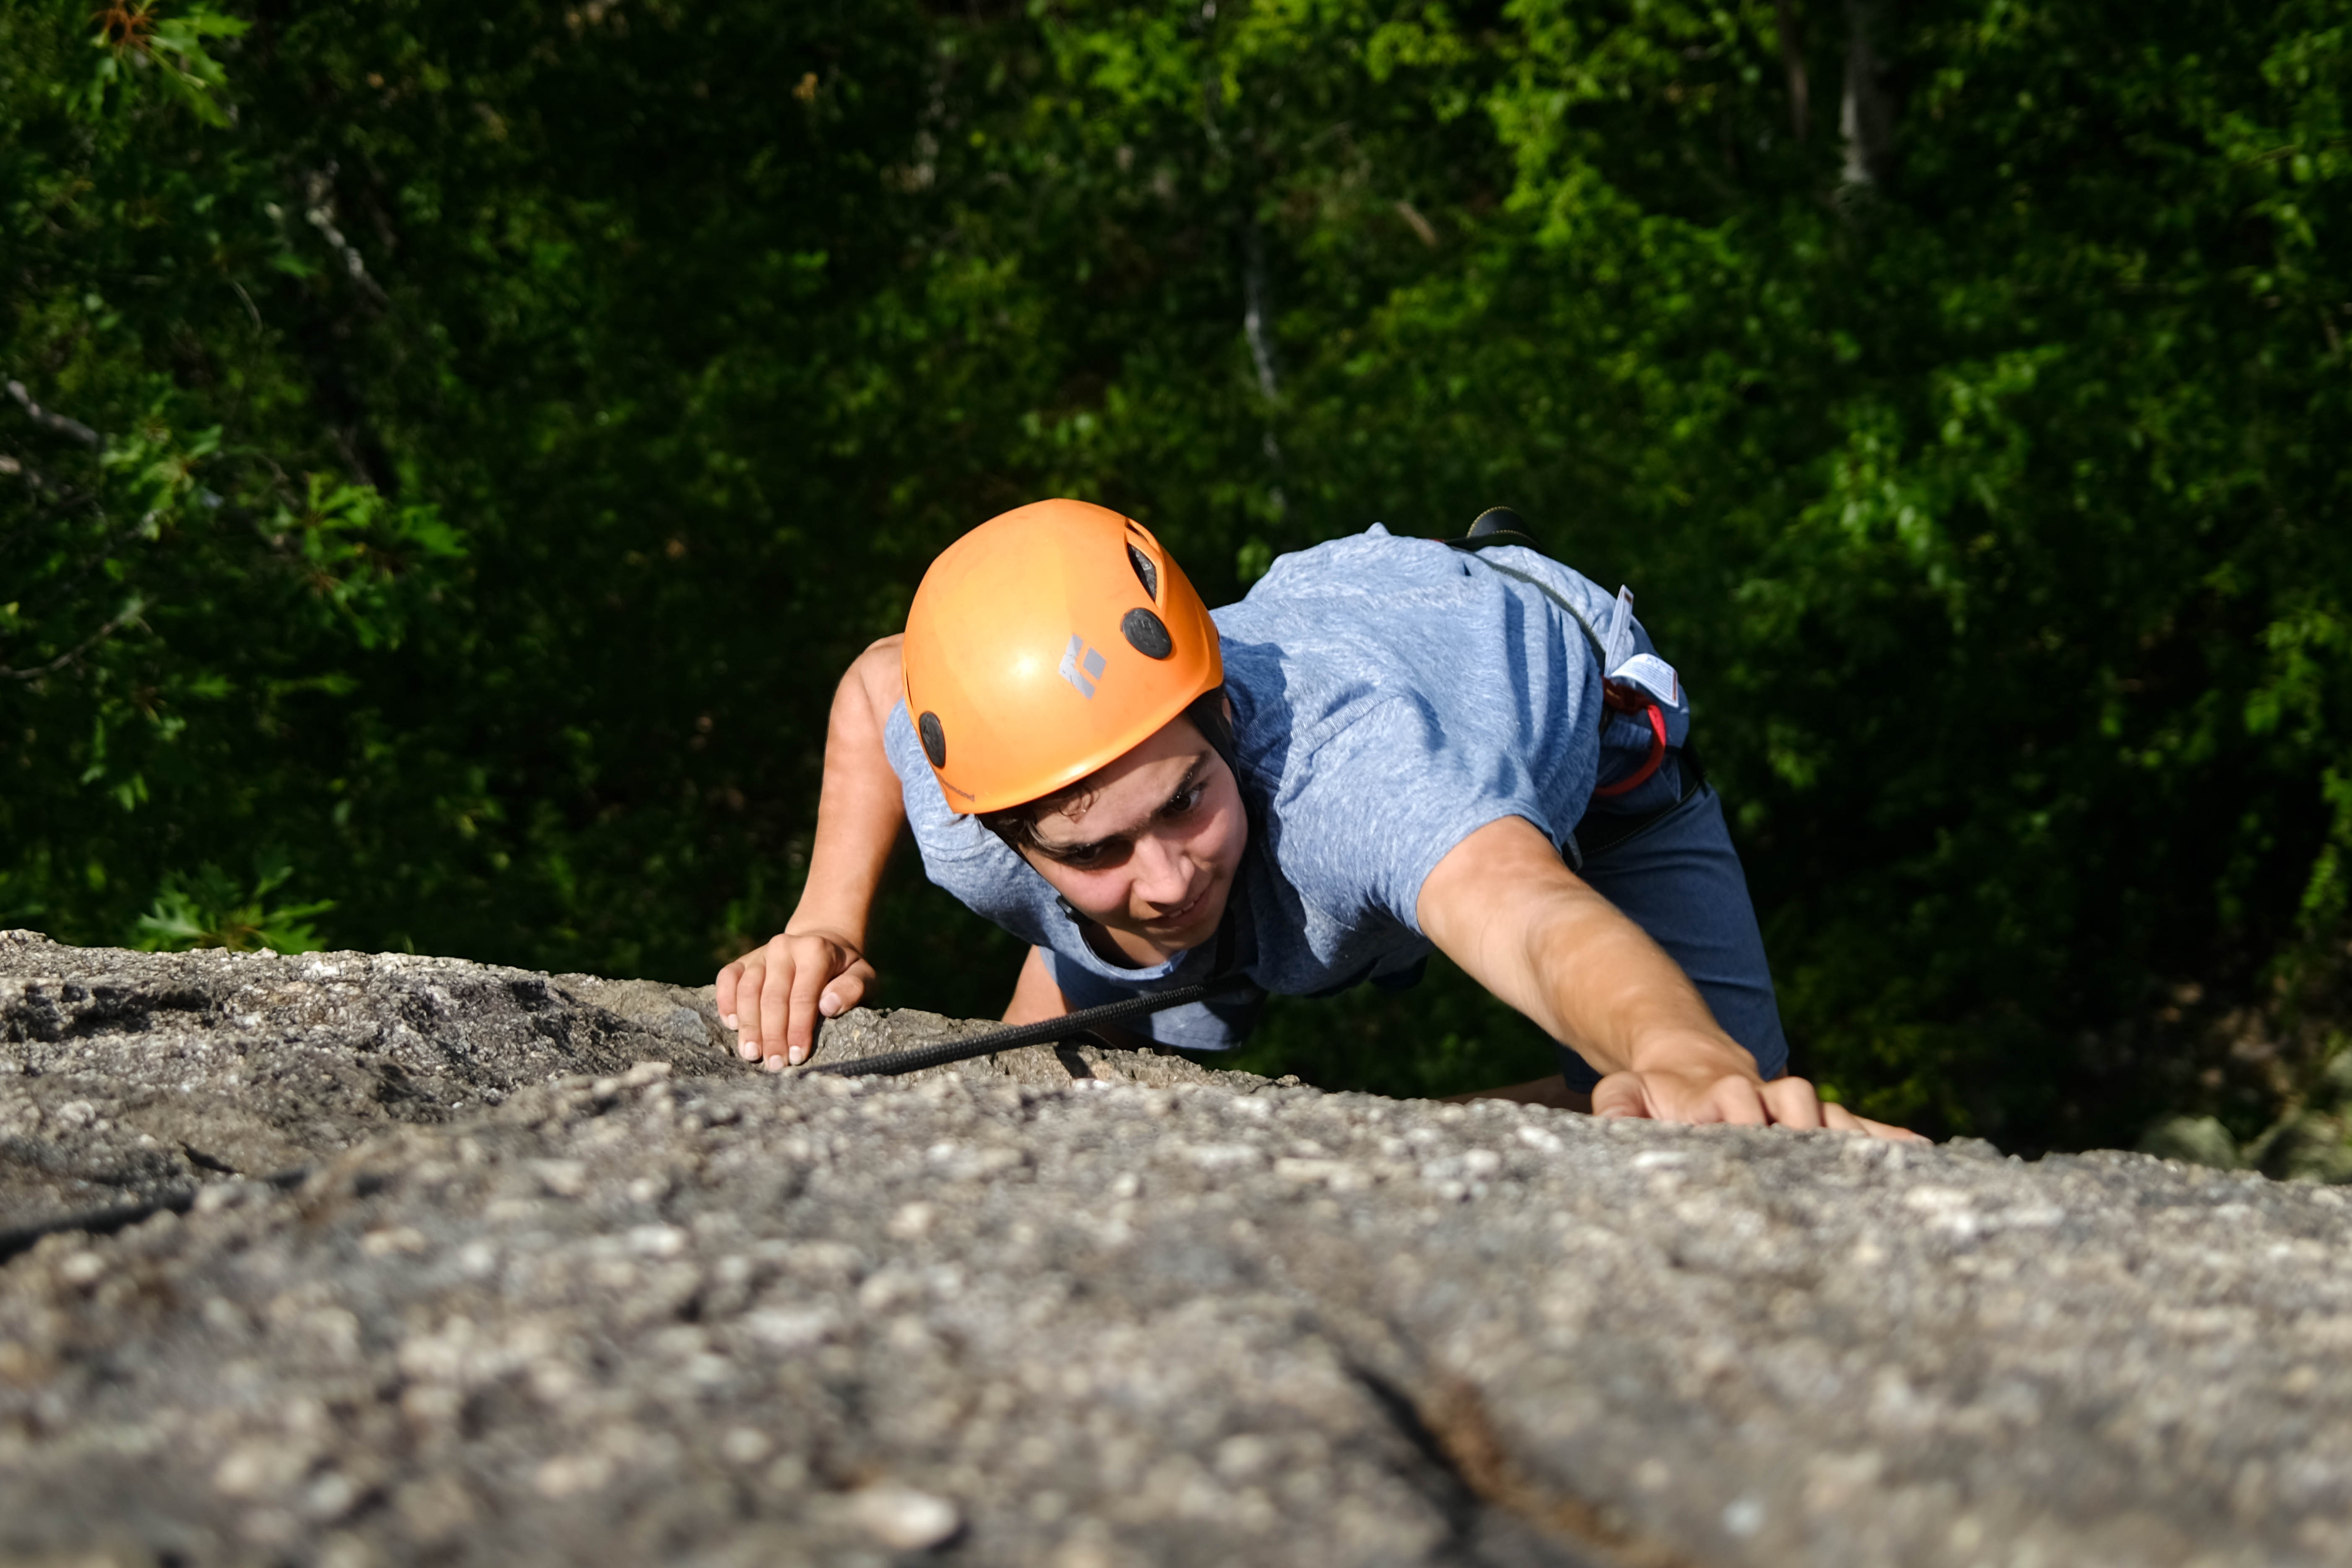 Climber's Journey Up North